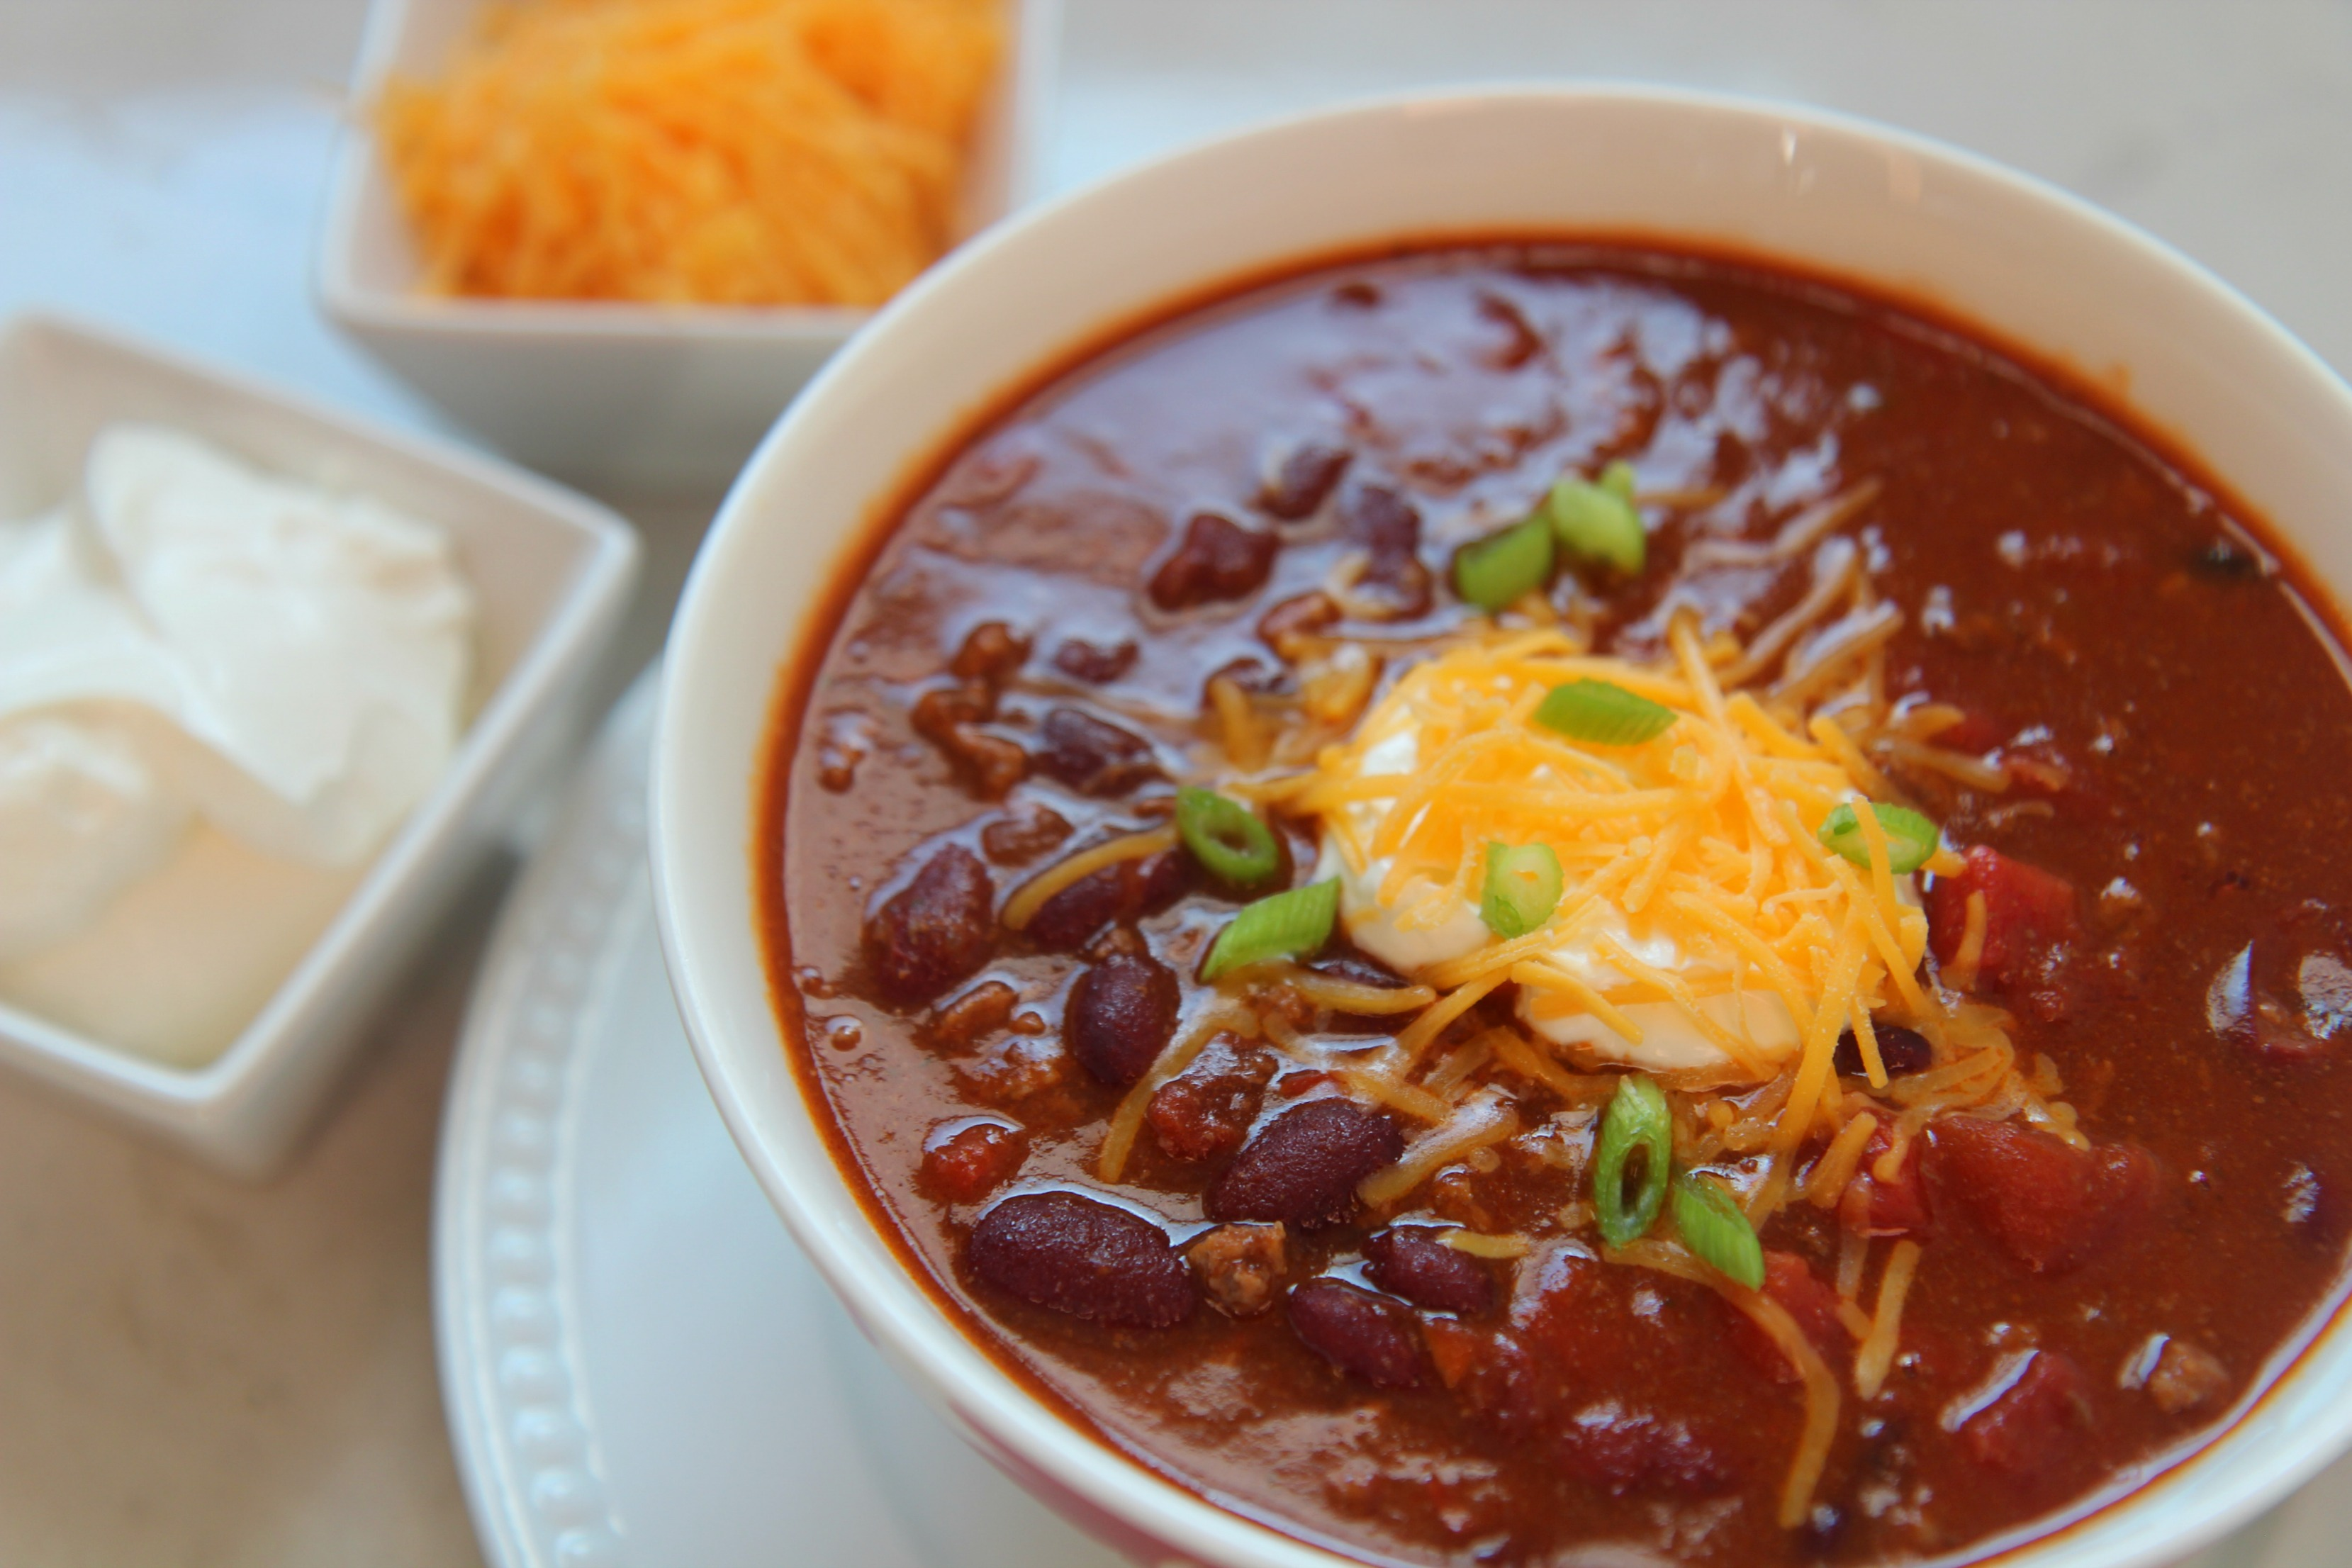 This hearty homemade chili is made with a can of salsa for an extra rich flavor